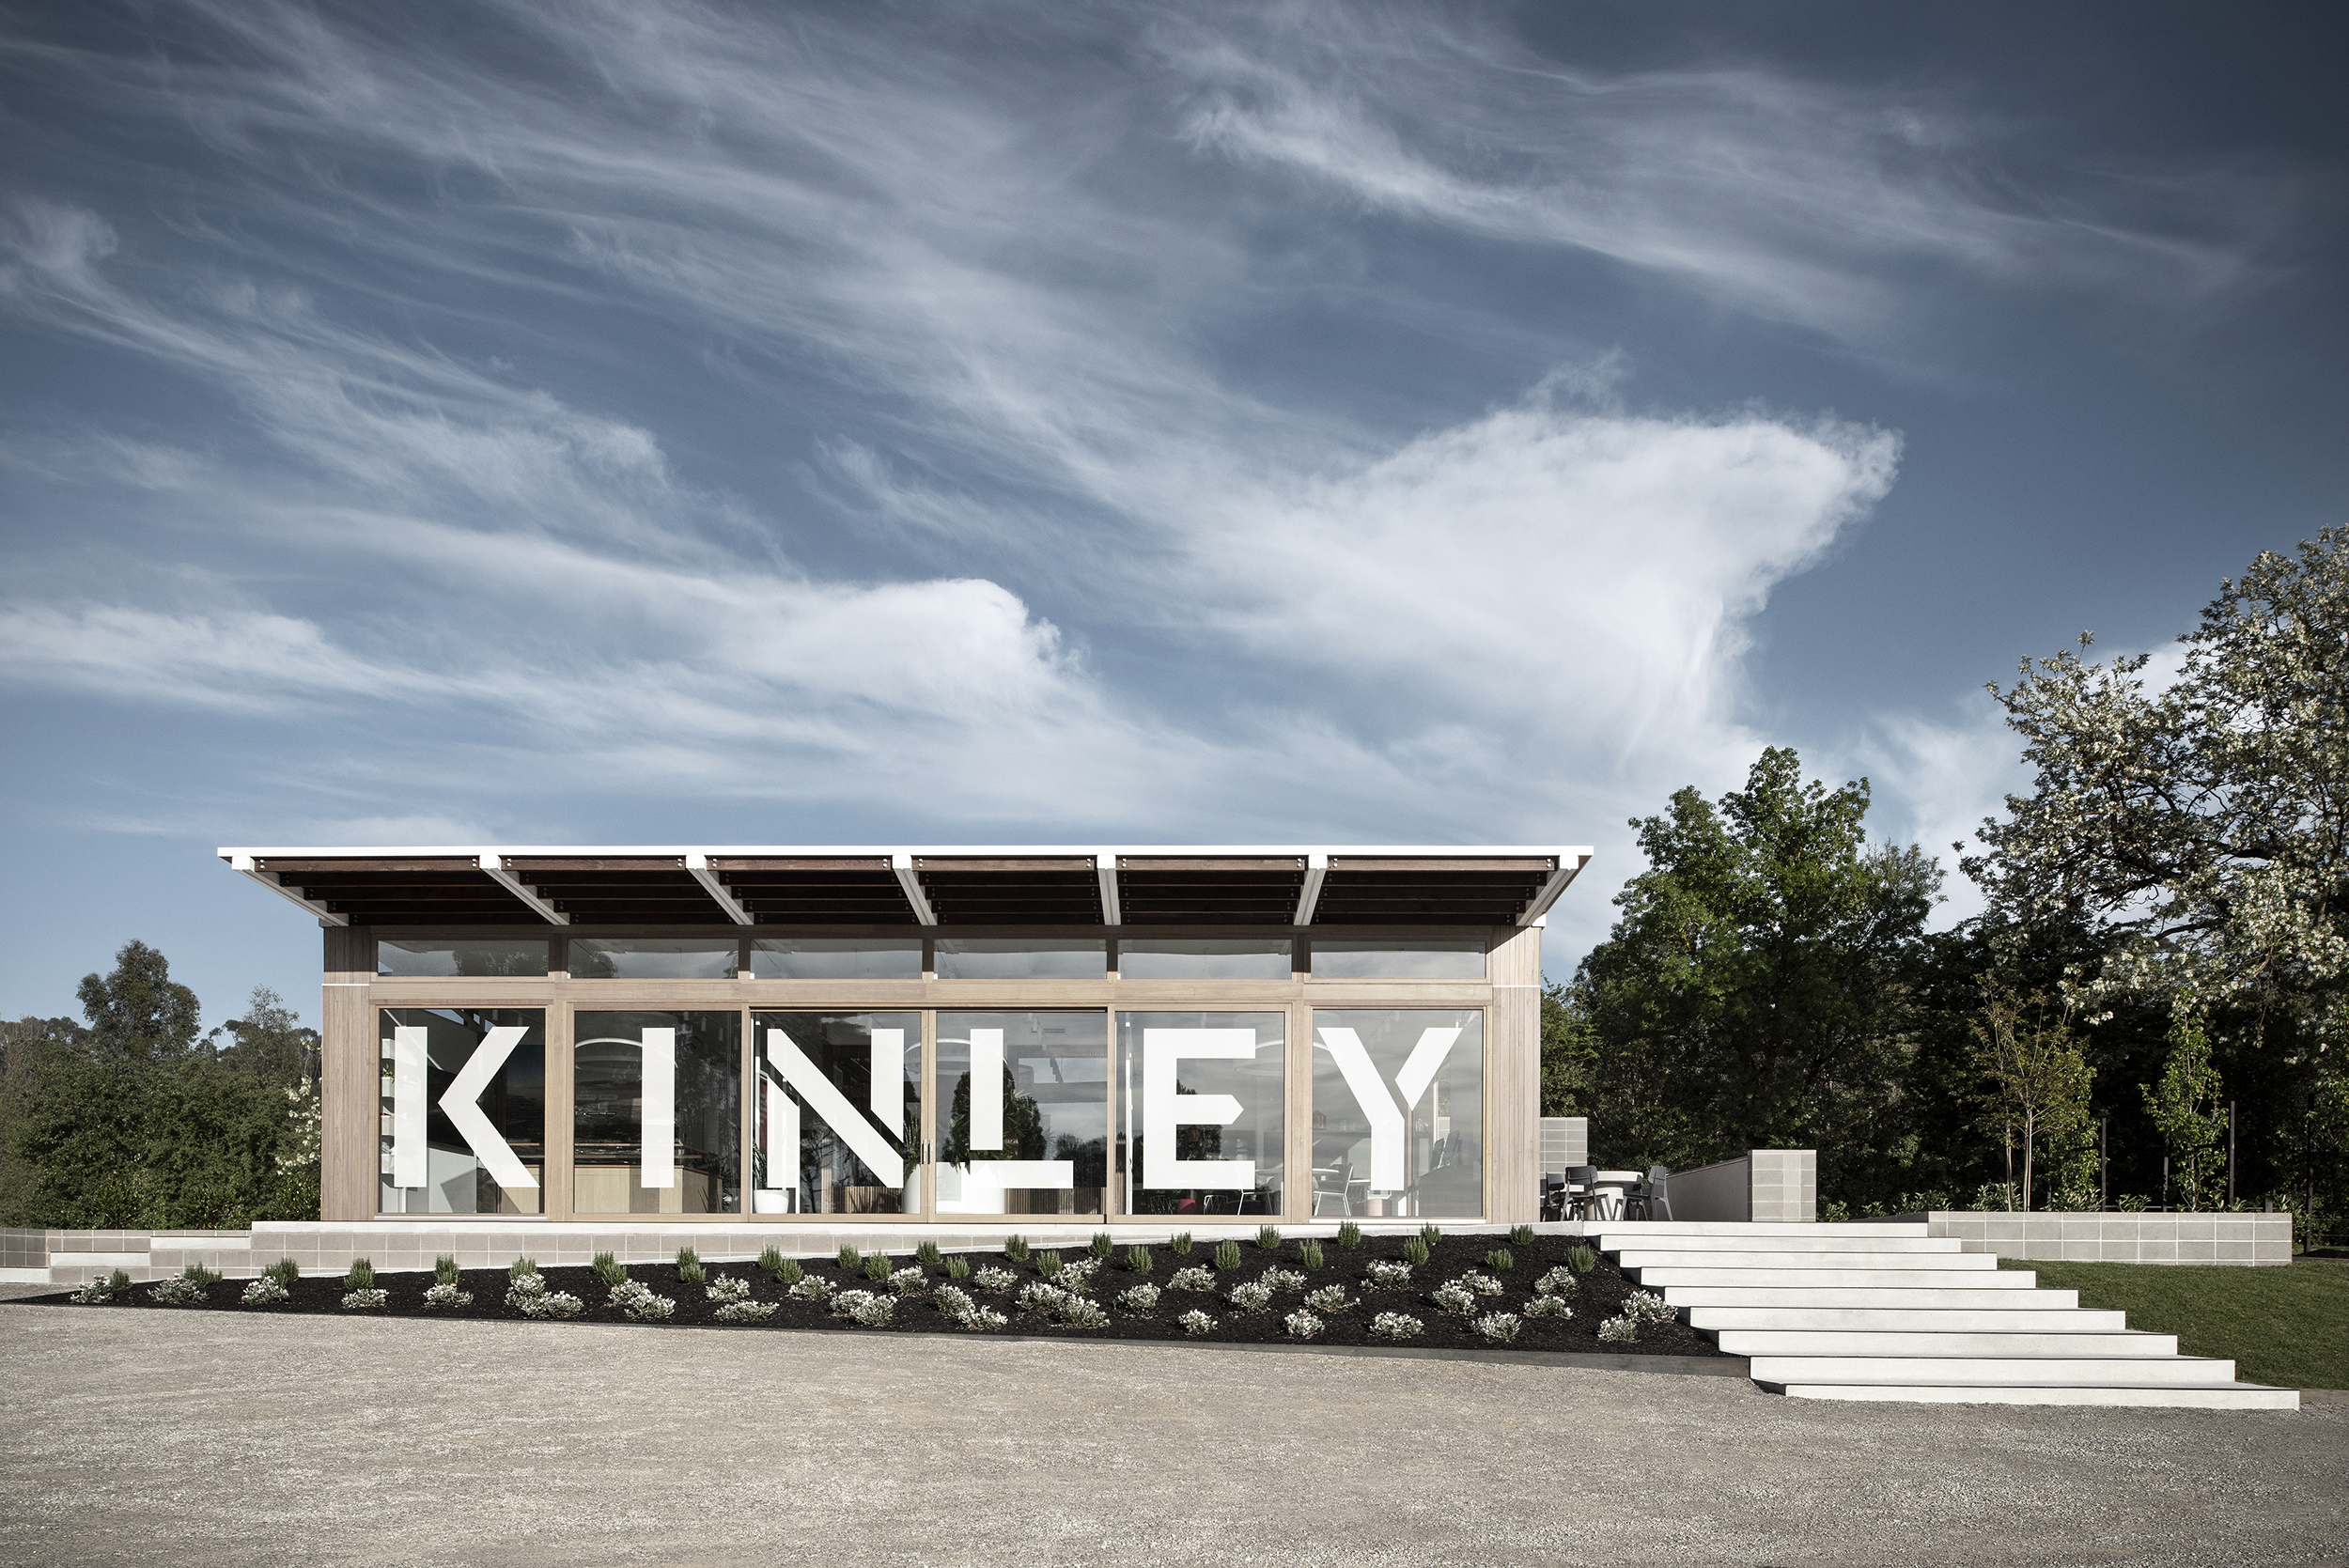 Winter Architecture_Kinley Cricket Club_Photography by Nicole England_01.jpg